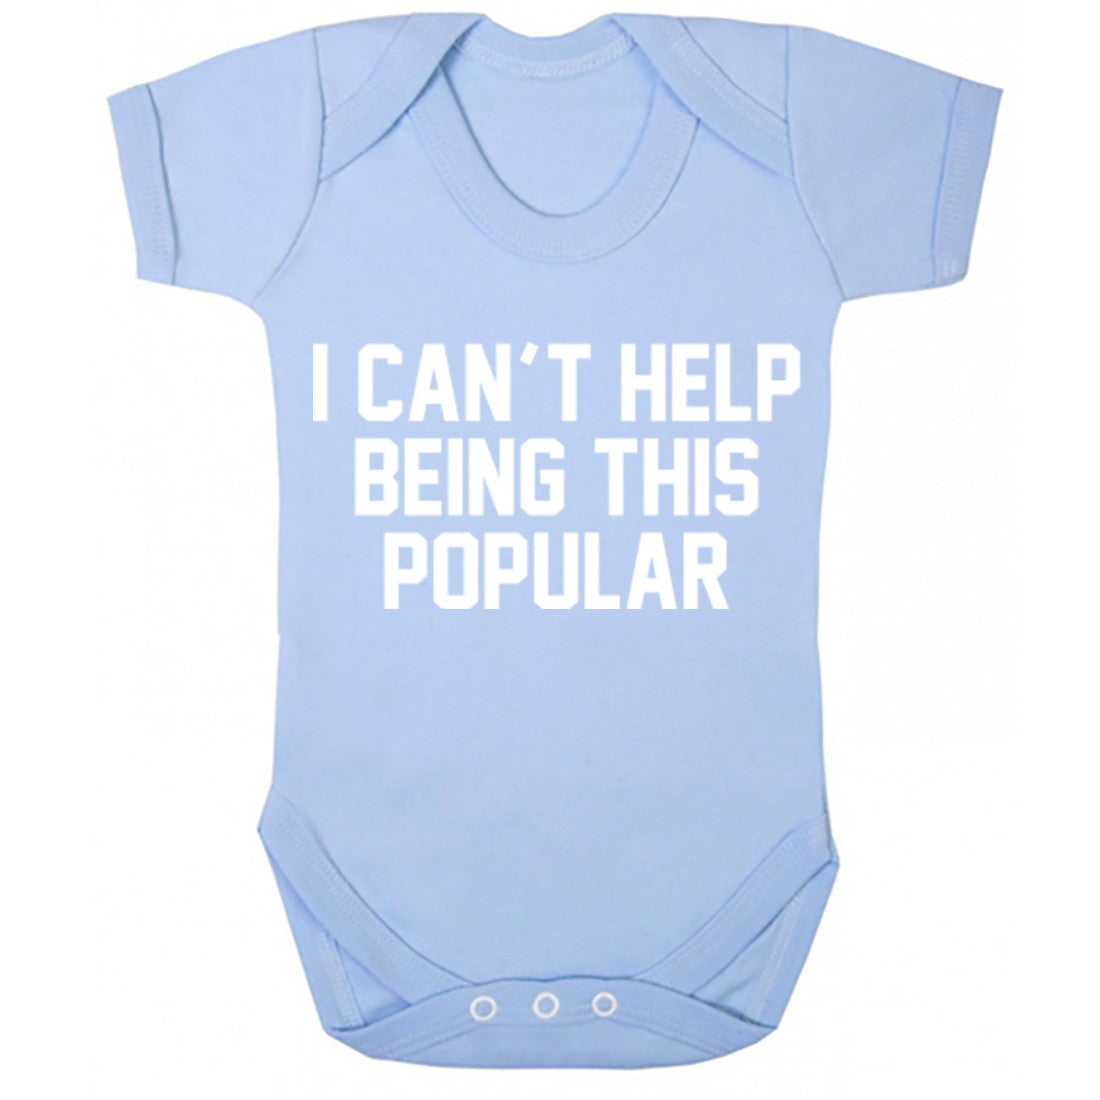 I Can't Help Being This Popular Baby Vest K0011 - Illustrated Identity Ltd.